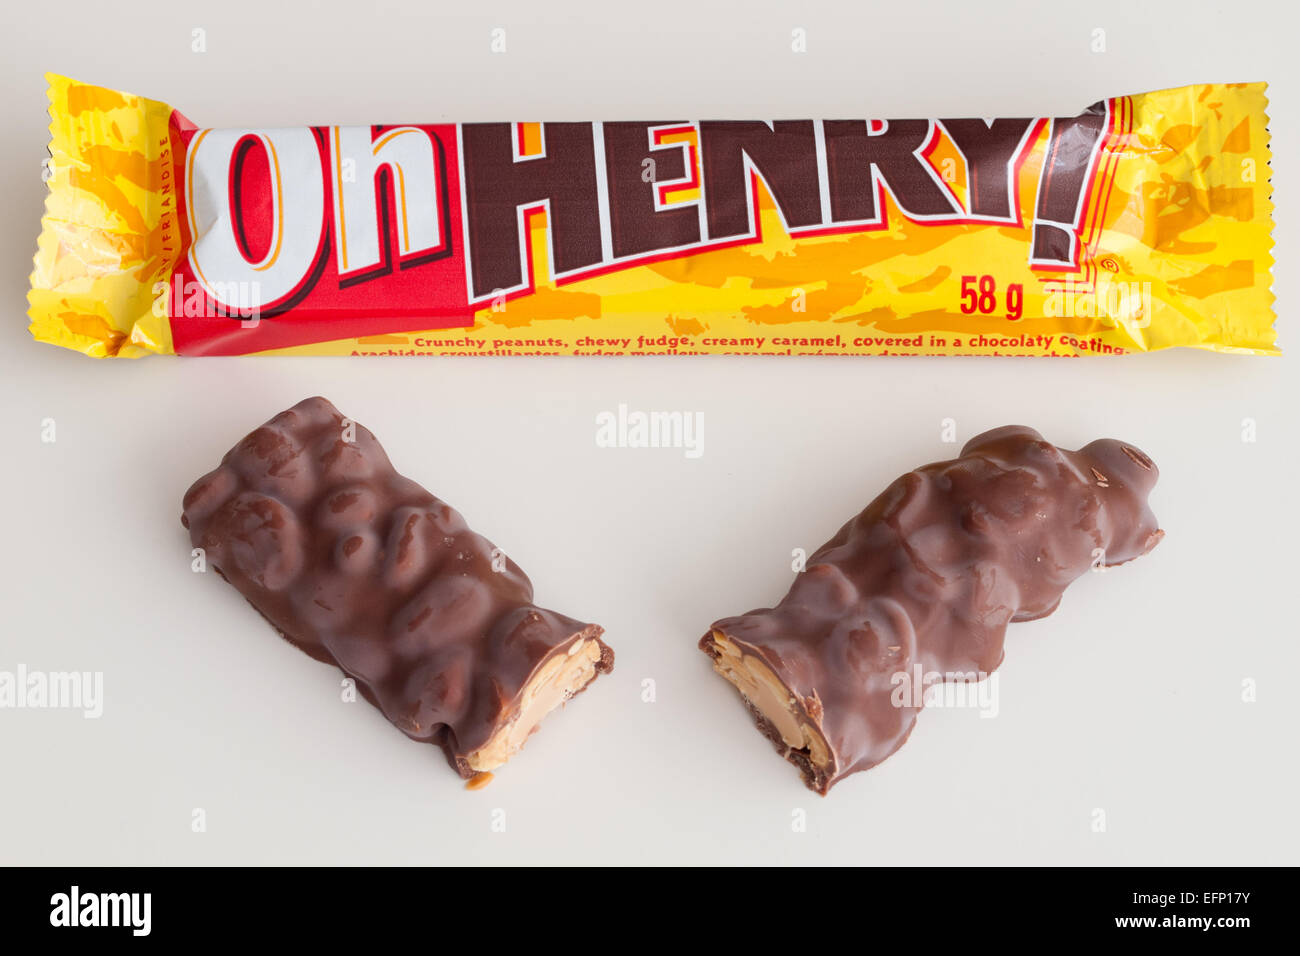 A Oh Henry! candy bar.  Canadian packaging shown. - Stock Image